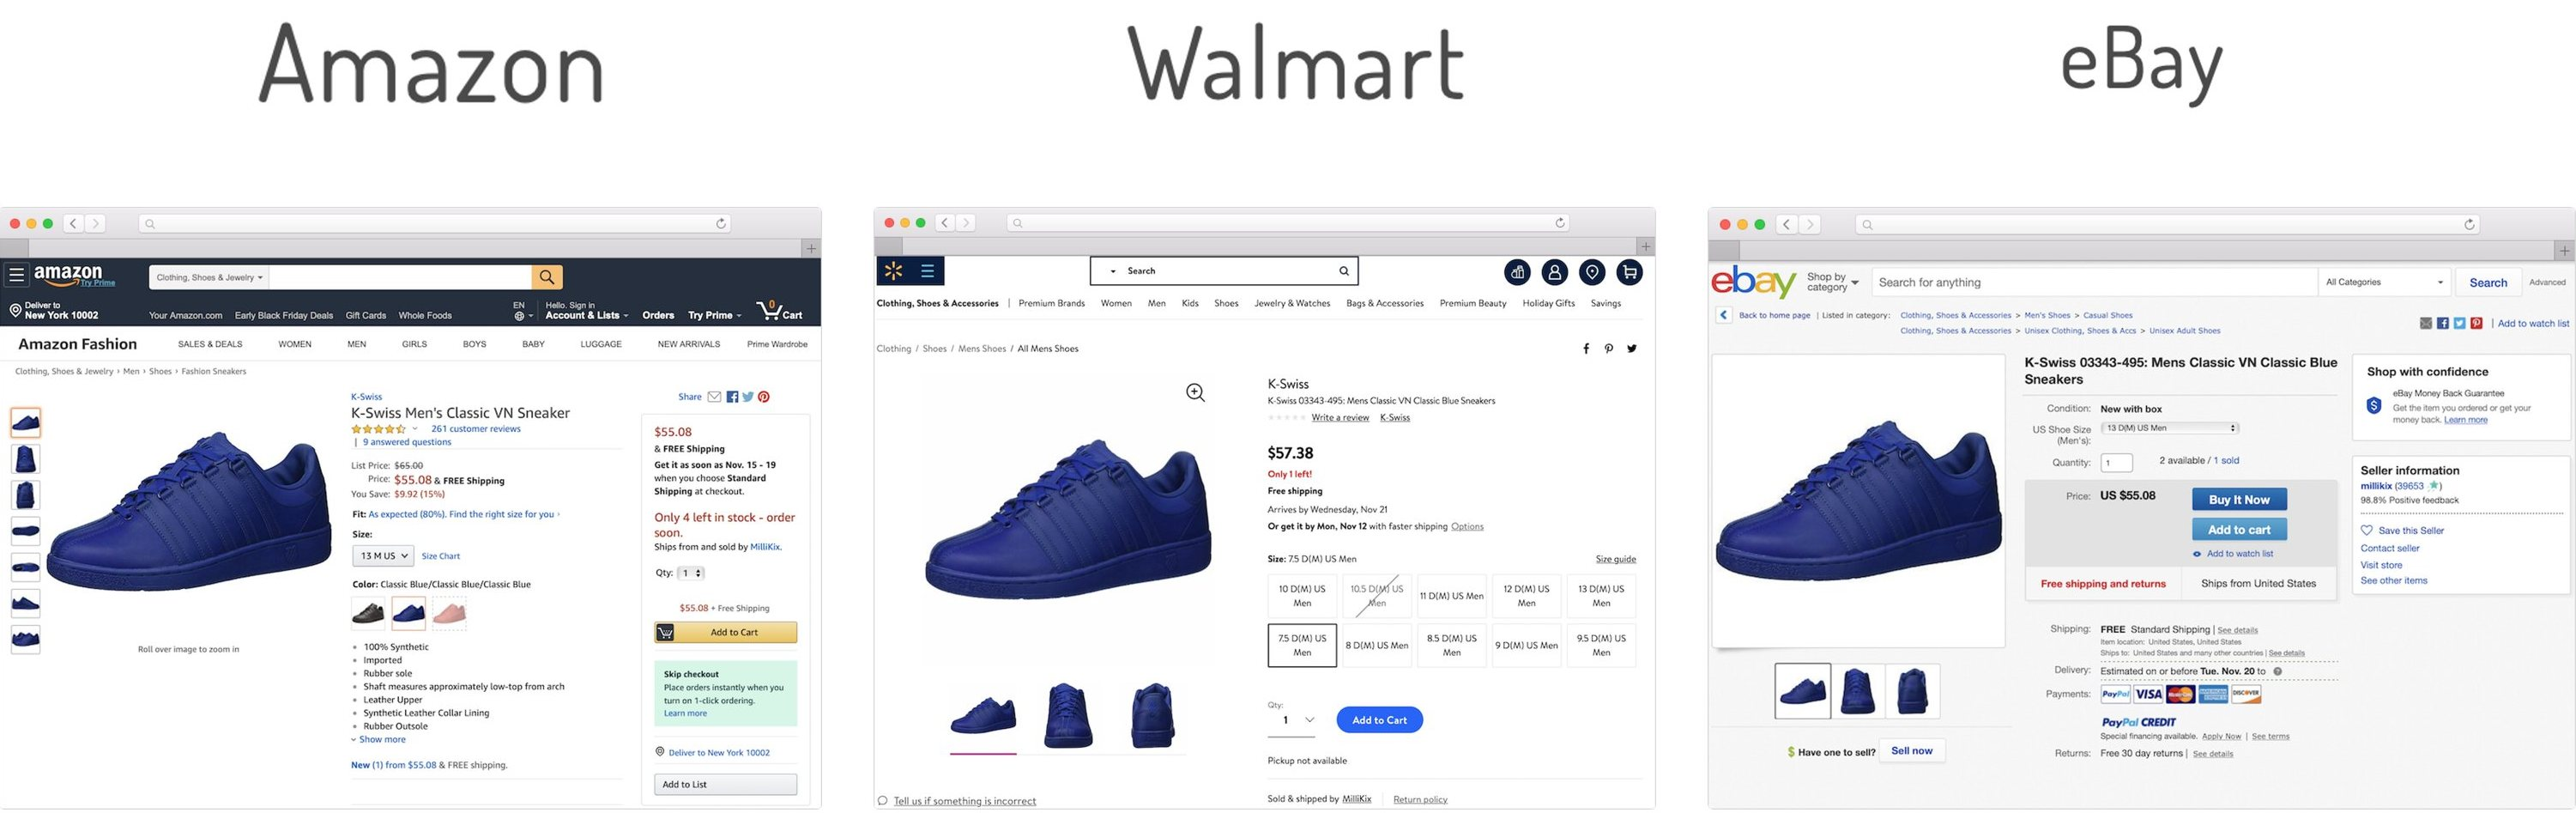 Amazon Walmart eBay marketplaces